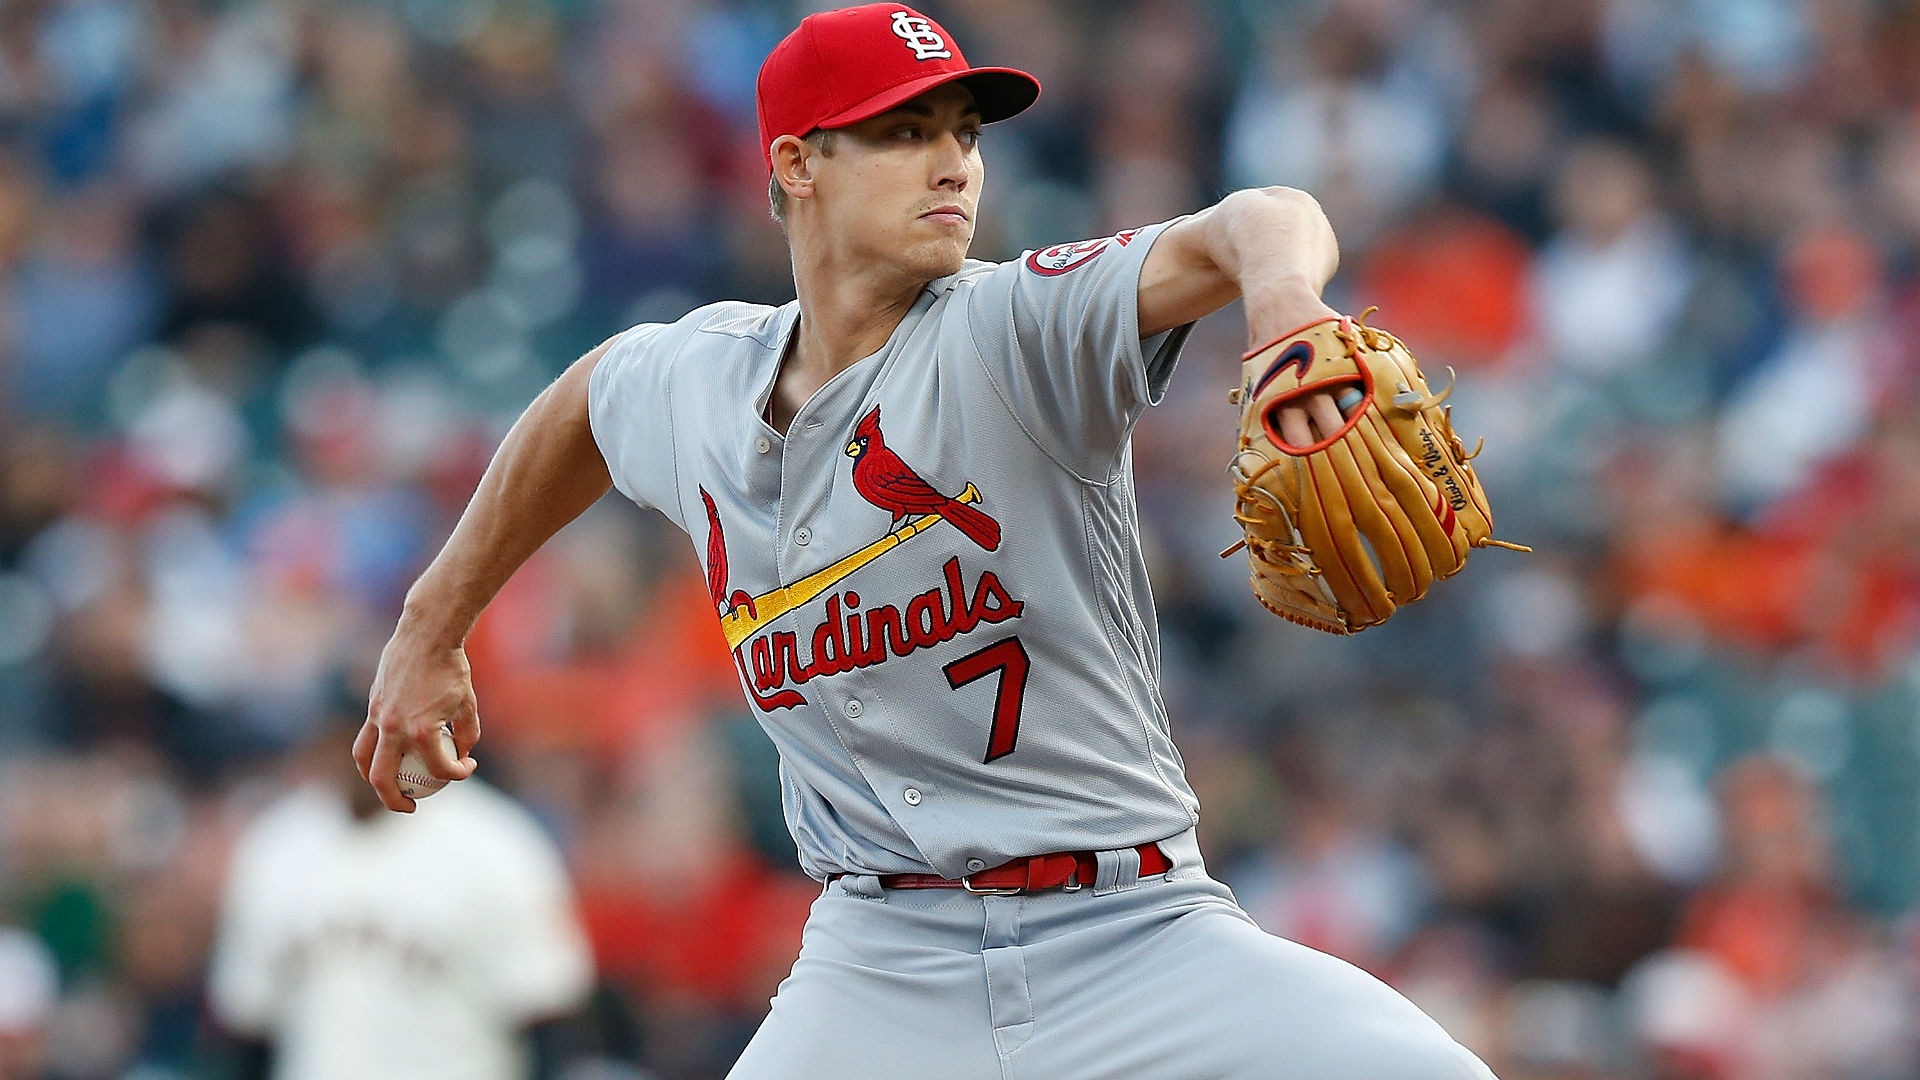 Cardinals pitcher Luke Weaver misses start after slicing finger on aluminum foil